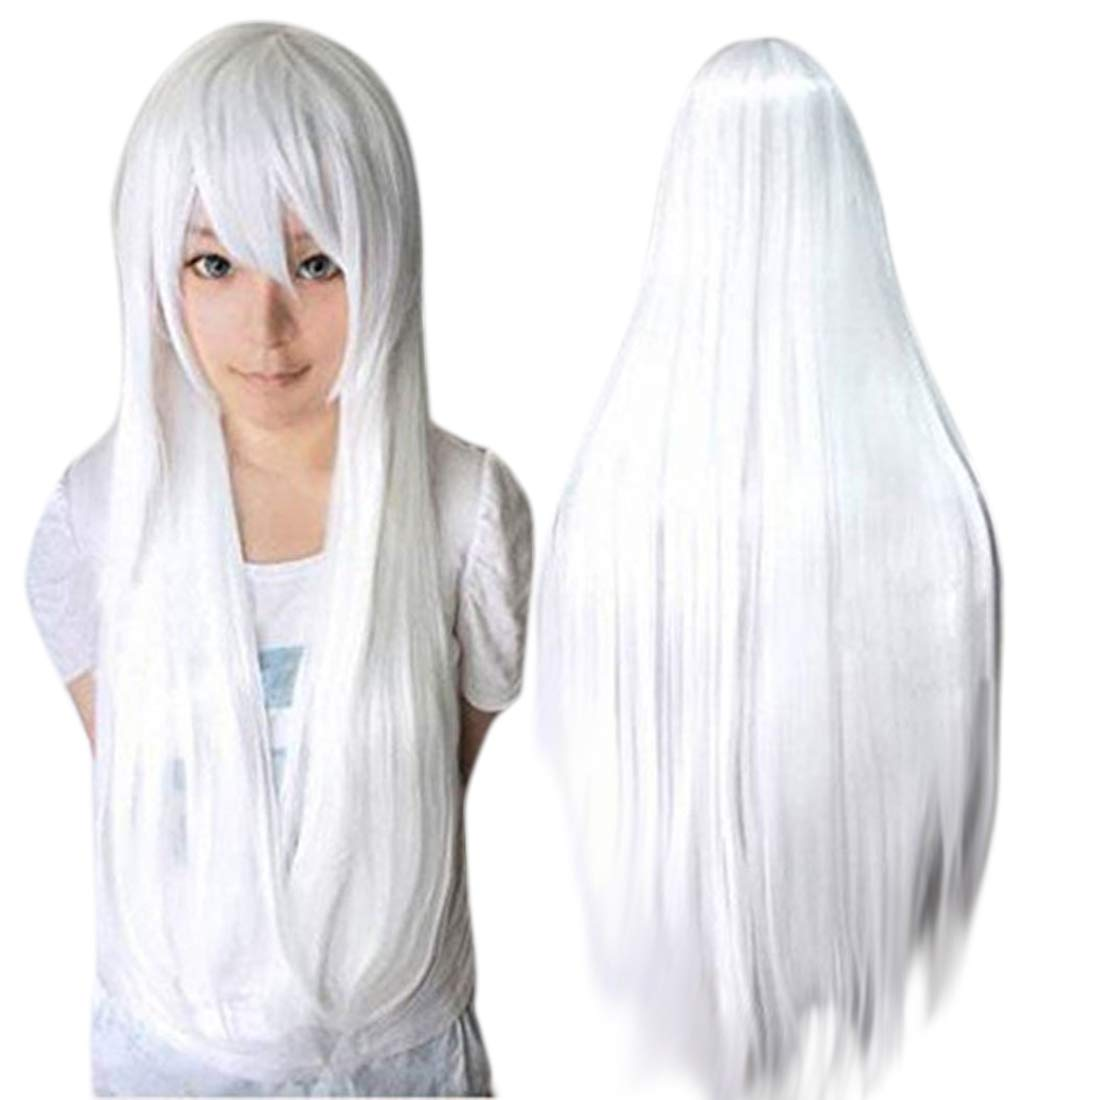 Anogol Vocaloid 32inches Long Straight Wigs Lolita White Cosplay Wig